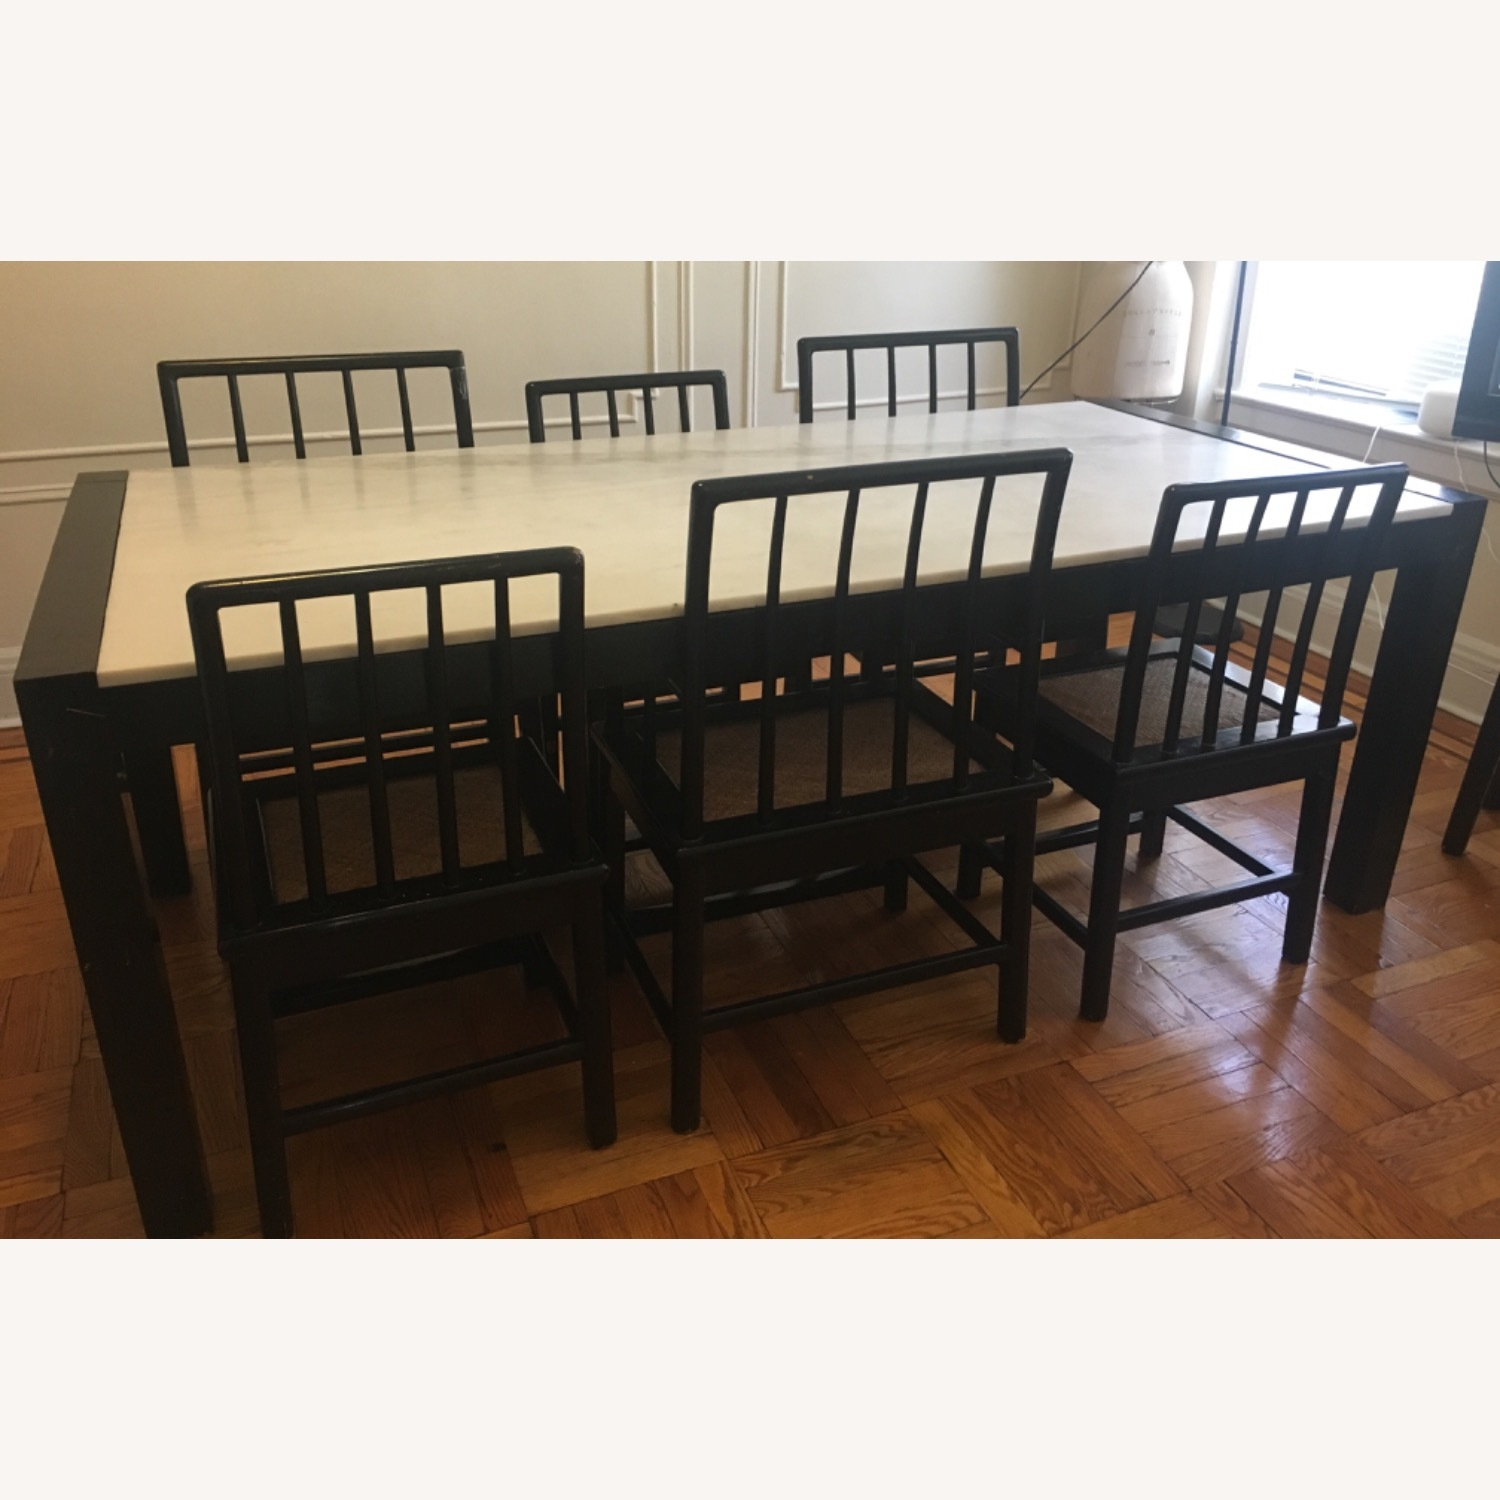 Ming Dynasty Style Dining Set Replica - image-1